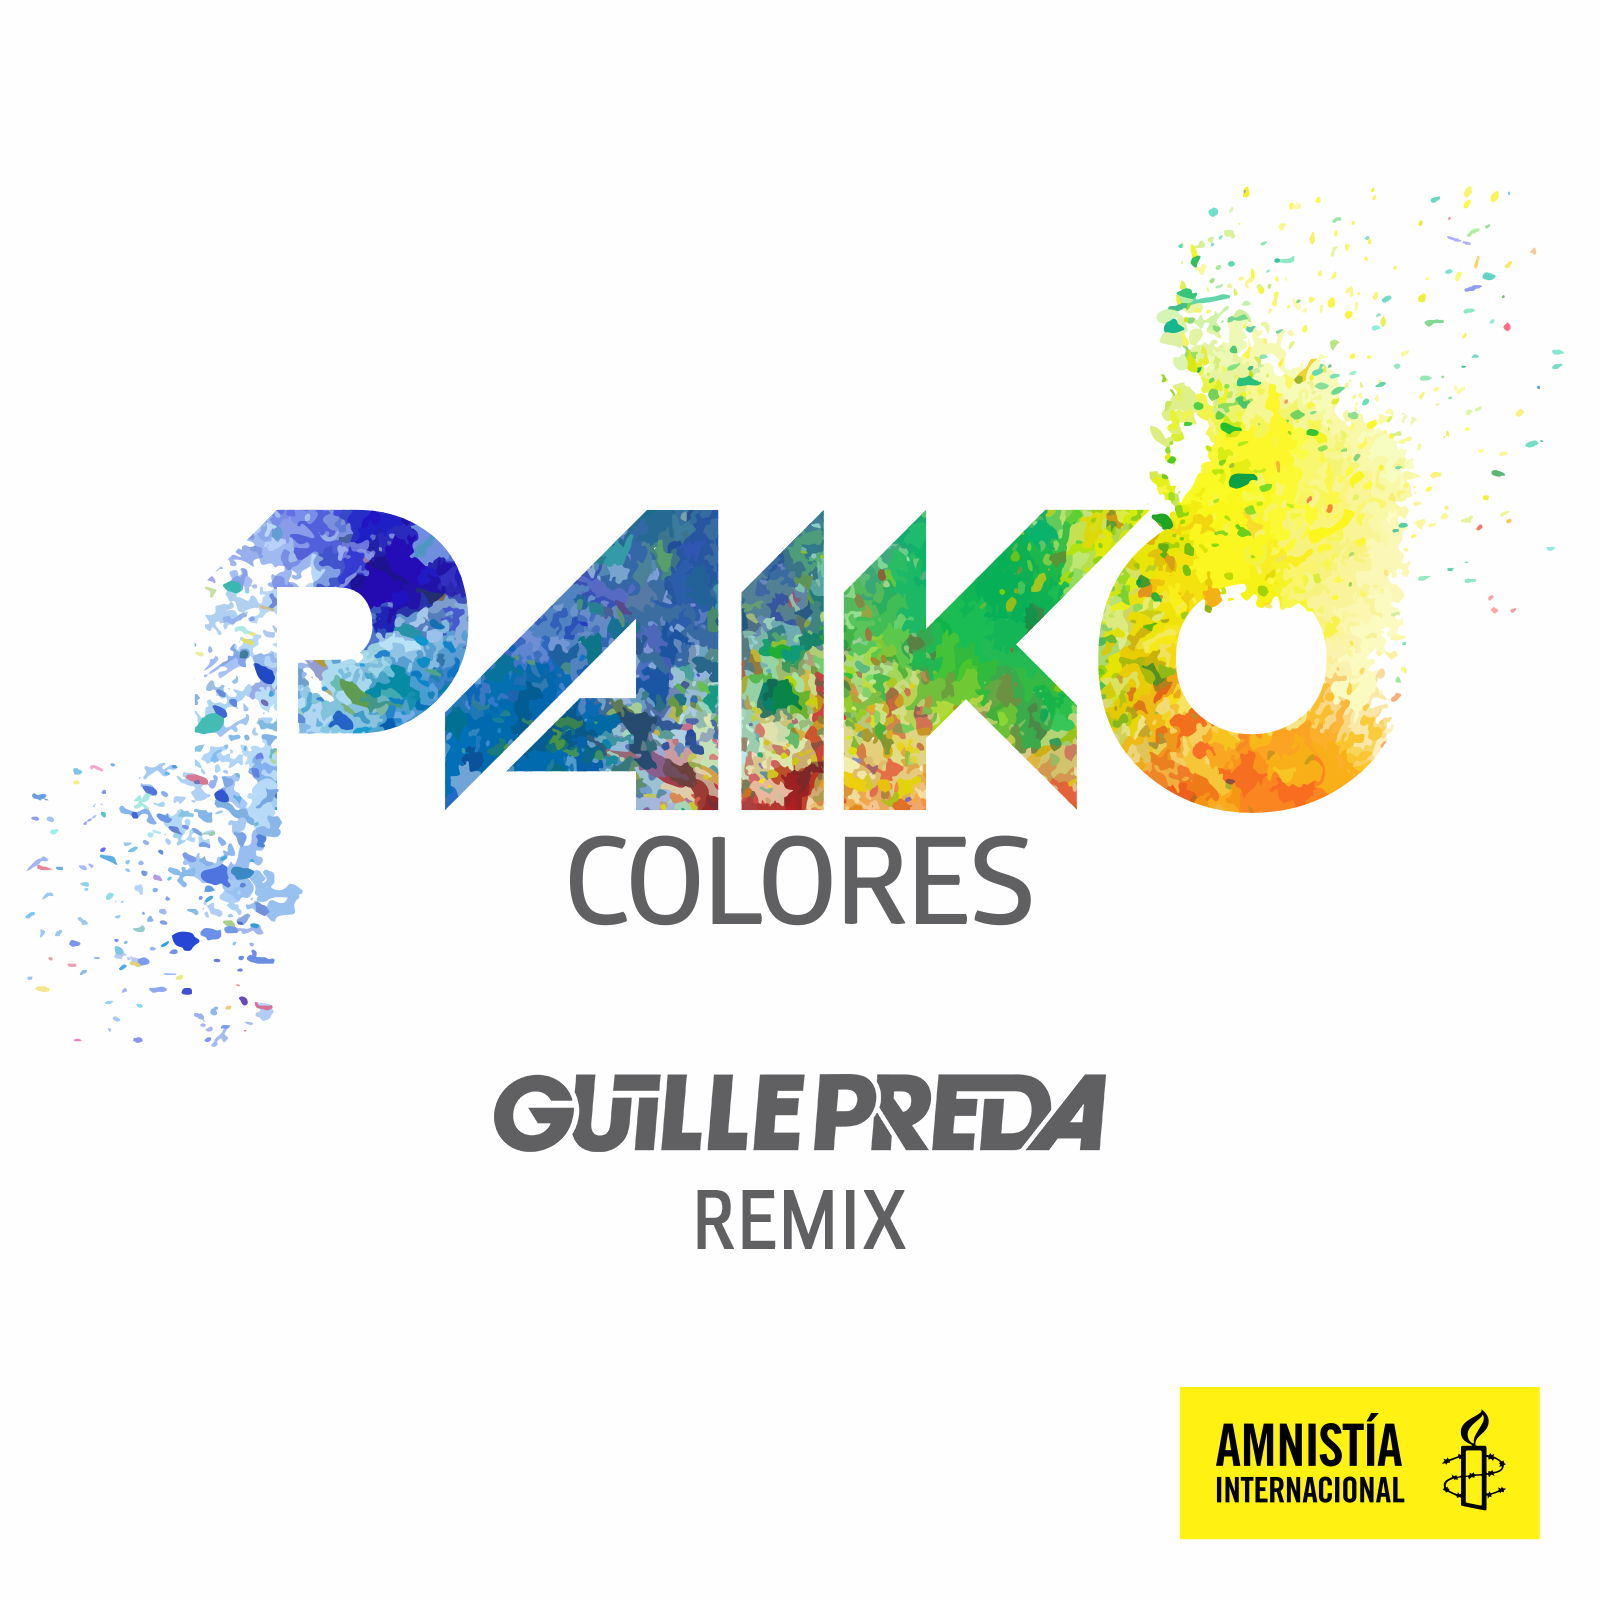 Artwork Colores (Guille Preda Remix)